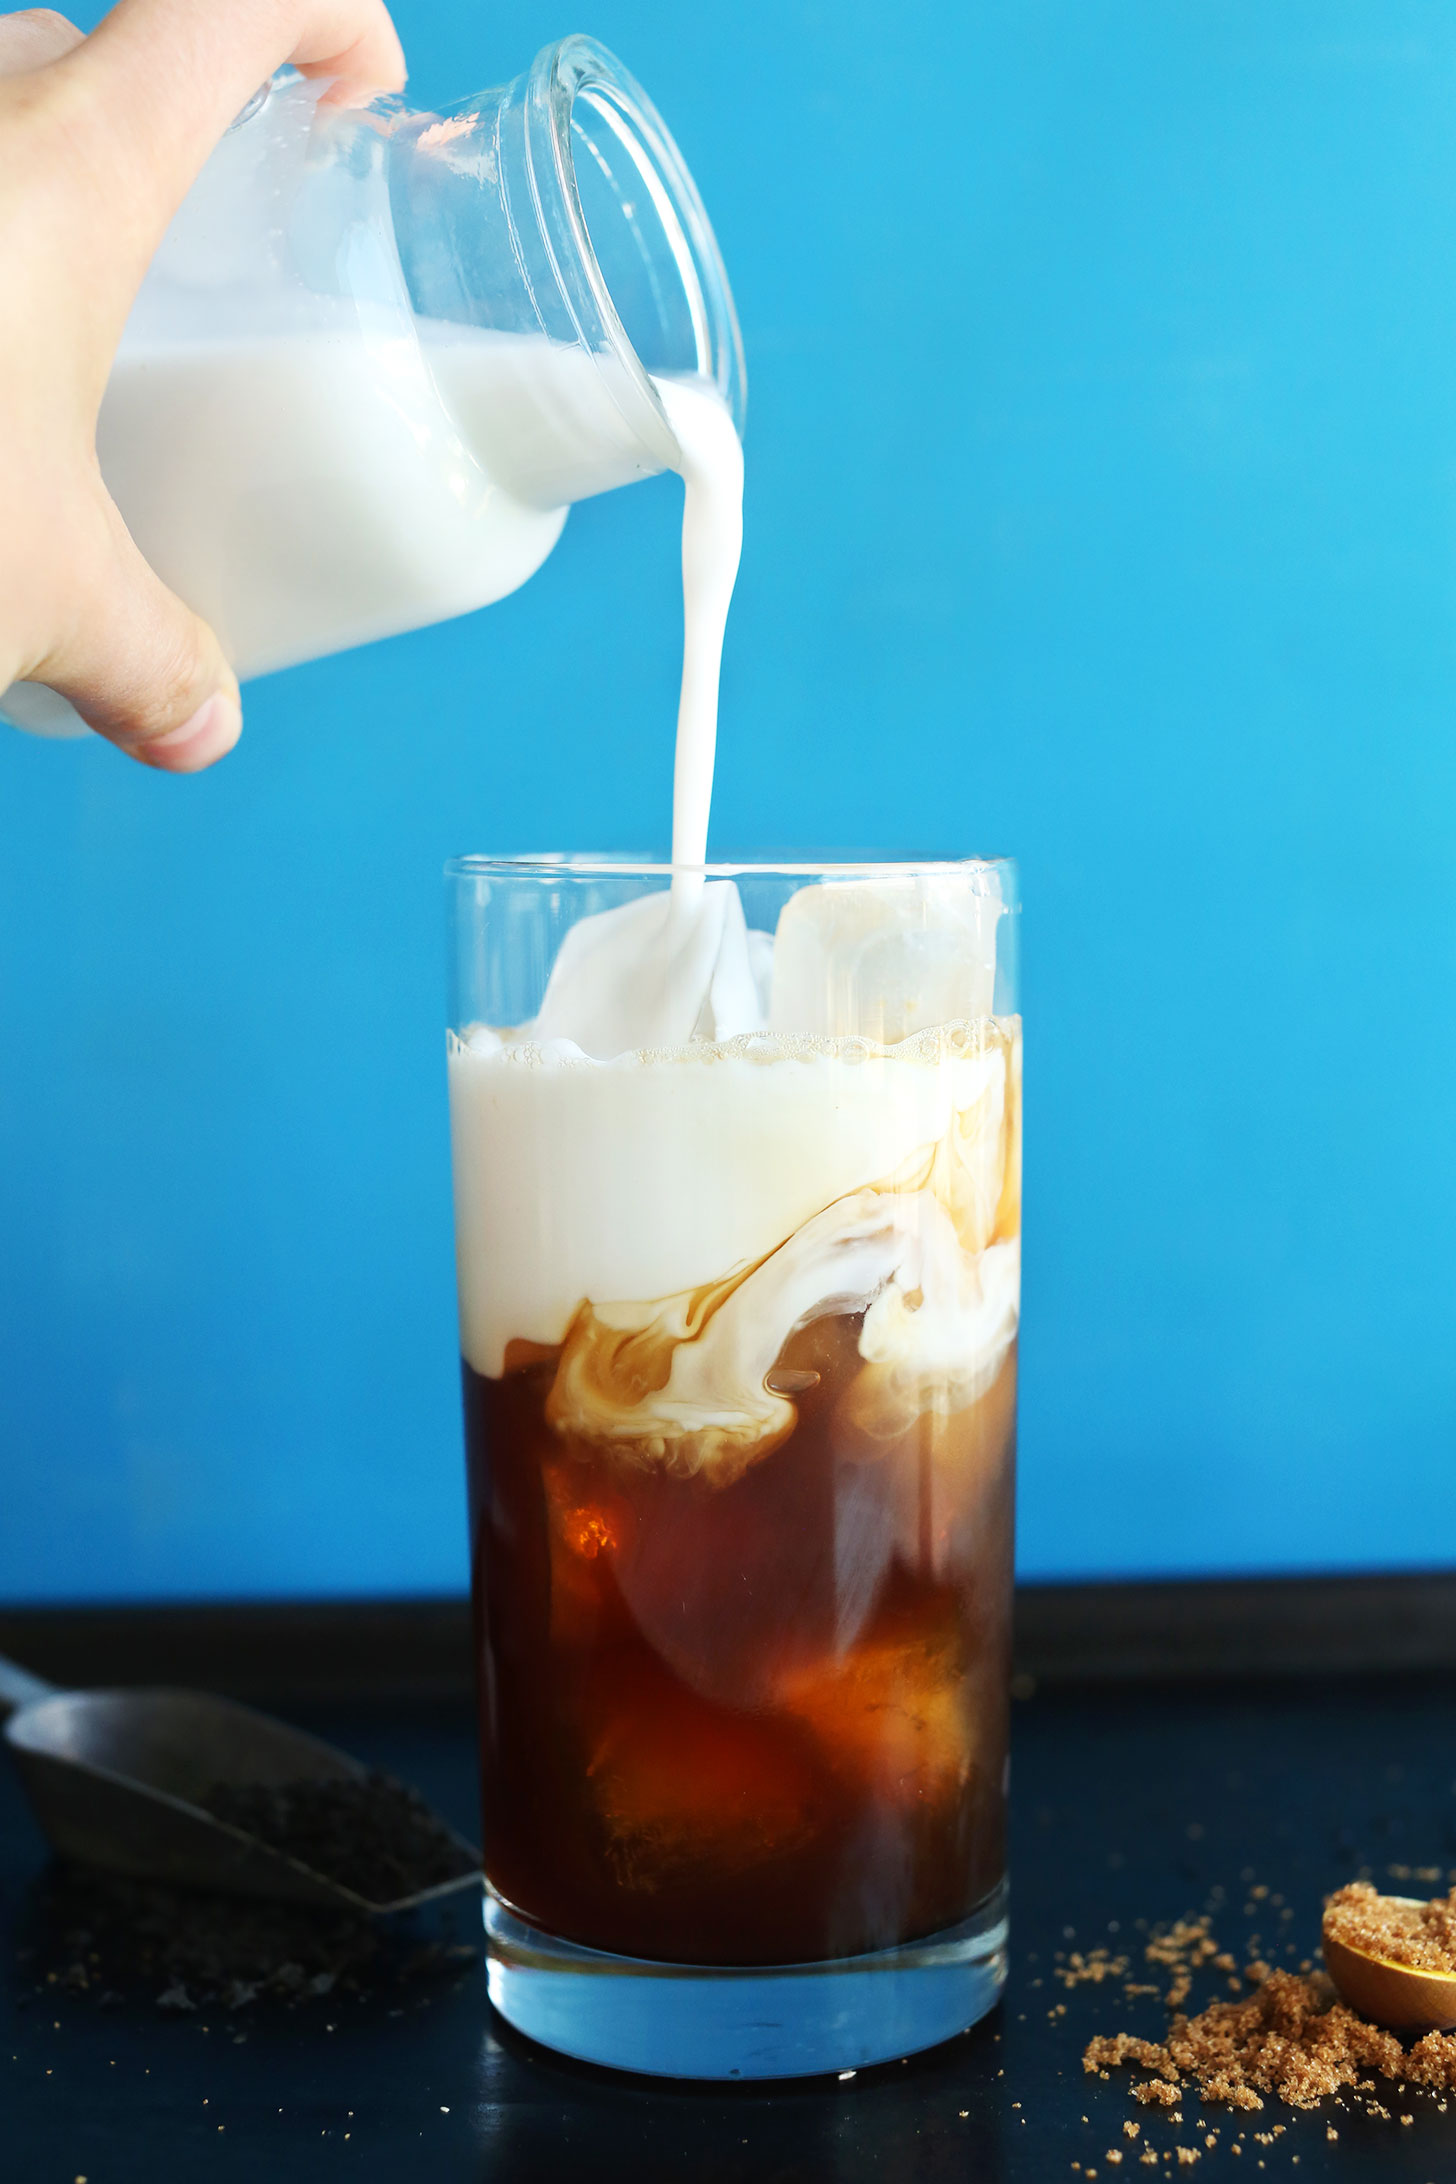 CREAMY Vegan Thai Iced Tea from scratch! So simple and delicious | Perfect alongside Thai dishes! #vegan #beverage #thai #dessert #coconut #tea